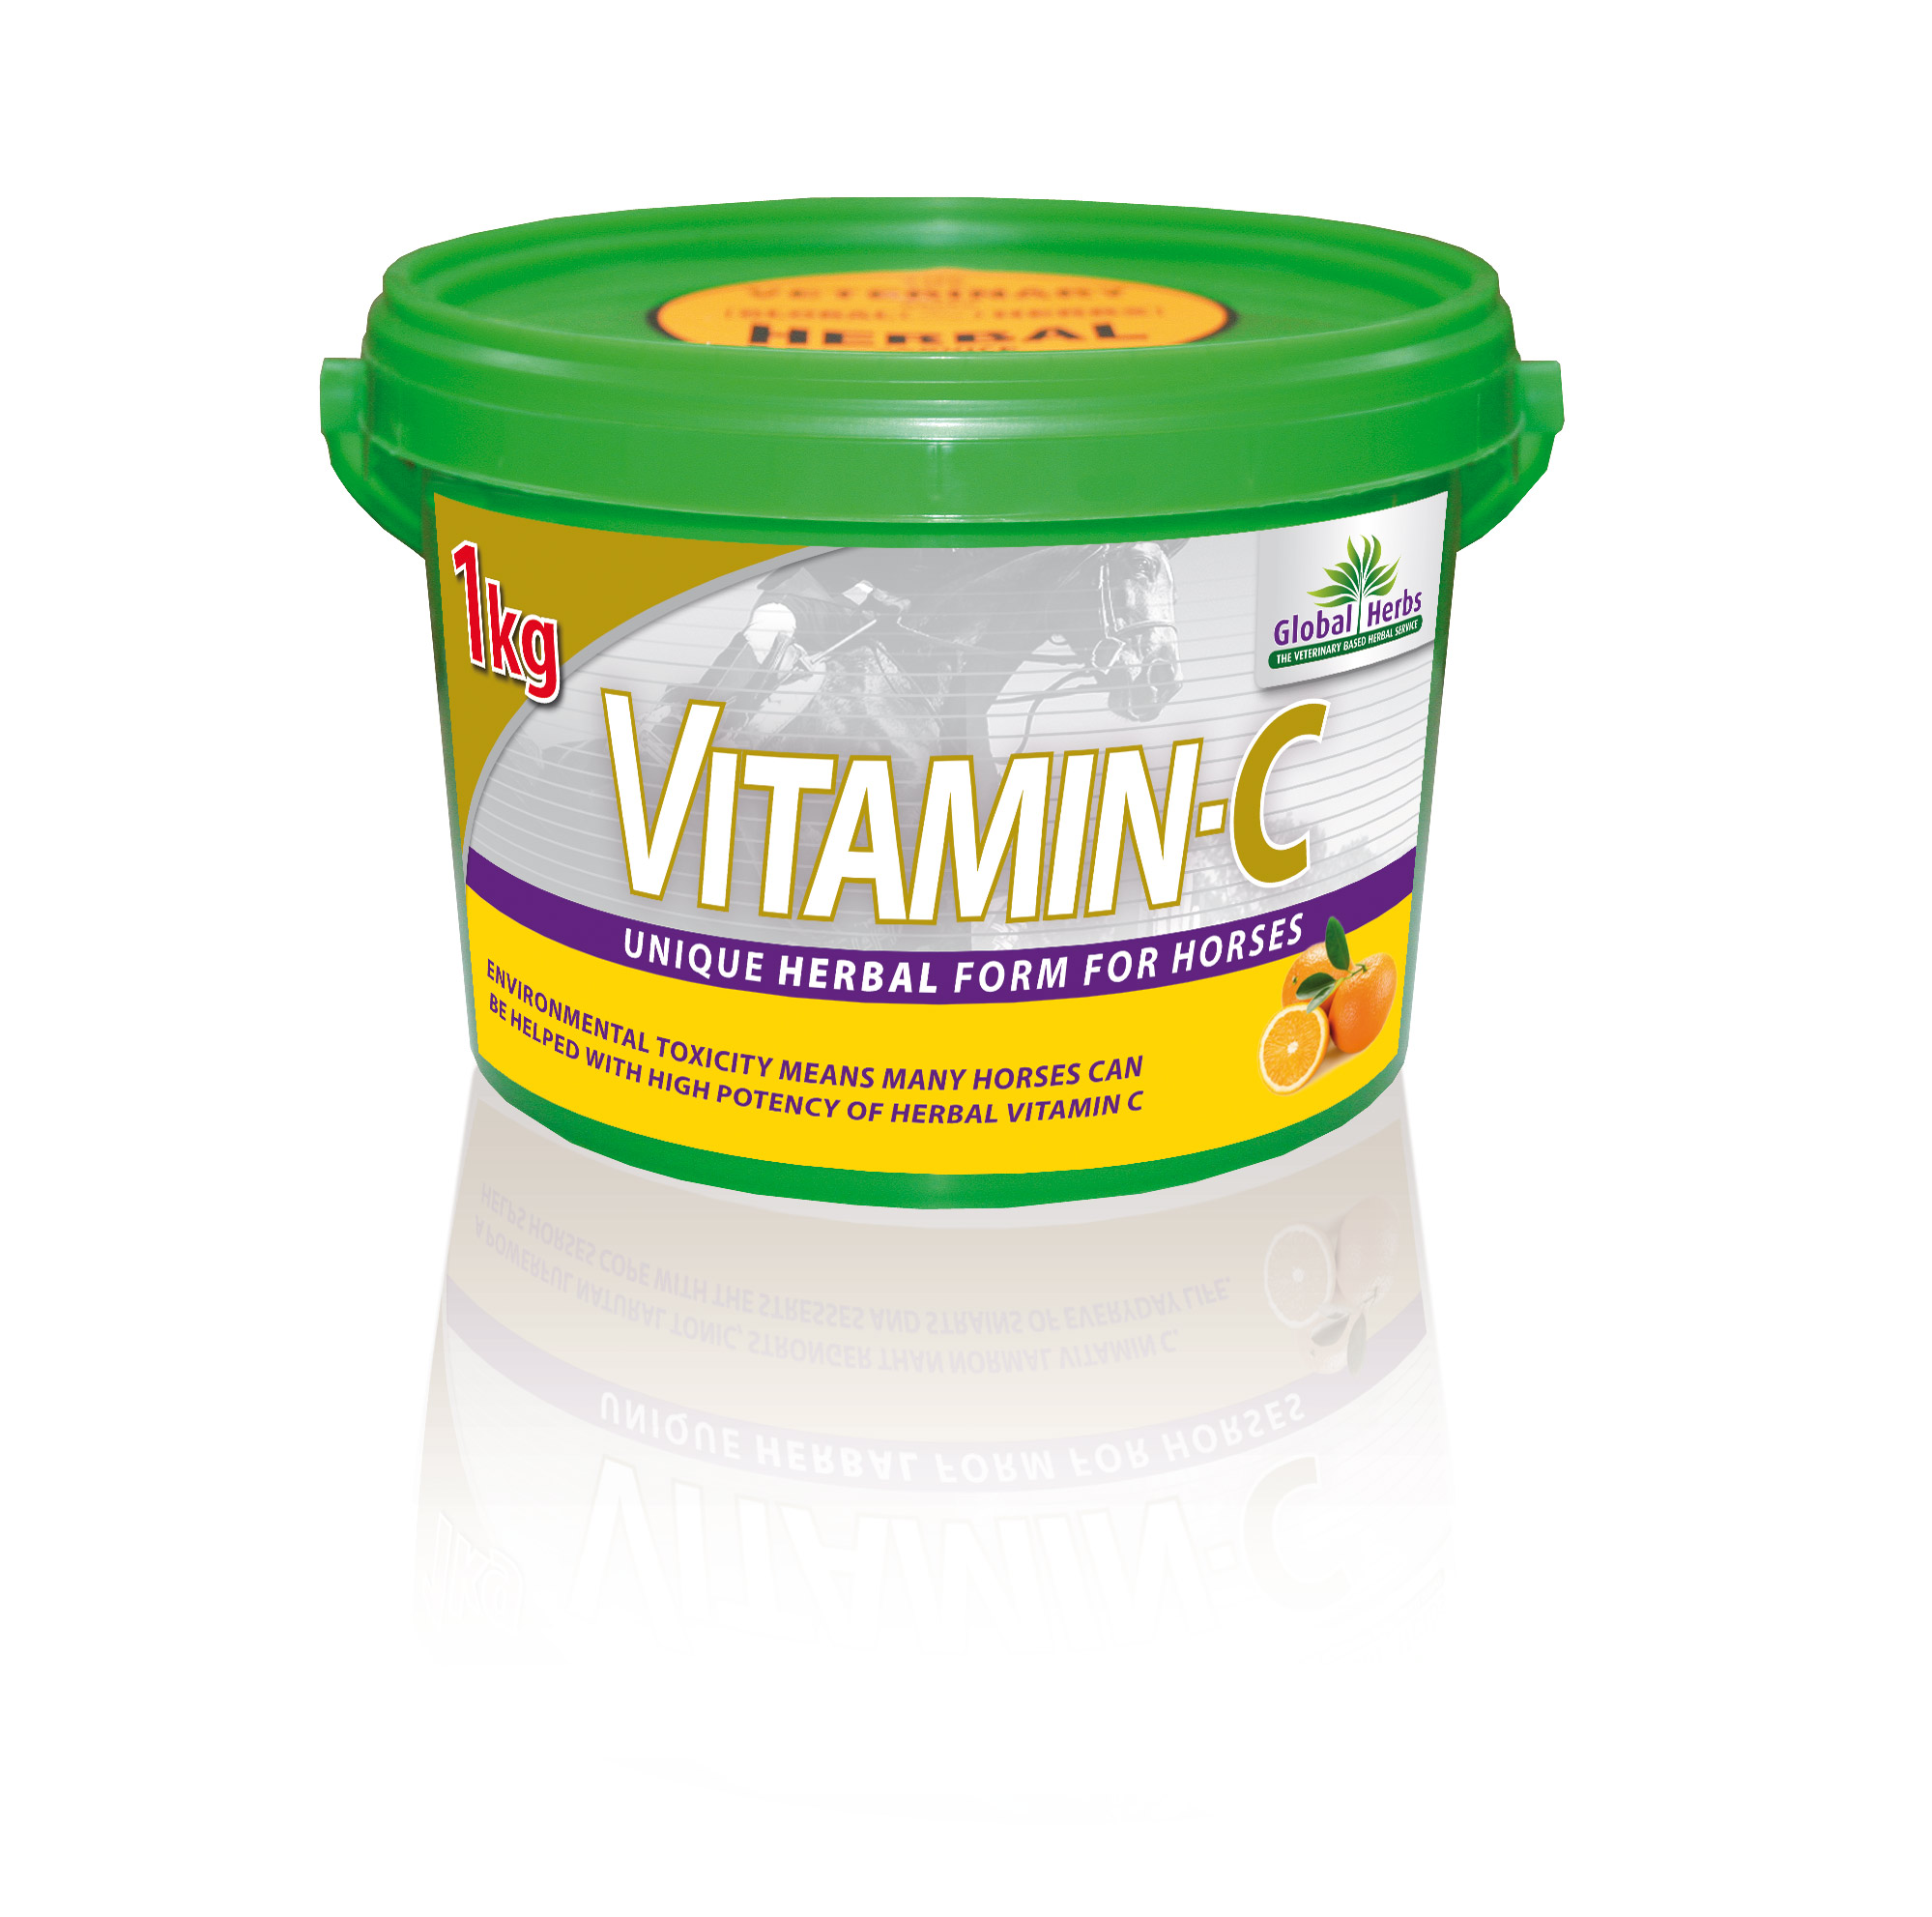 Global Herbs Vitamin-C for Horses